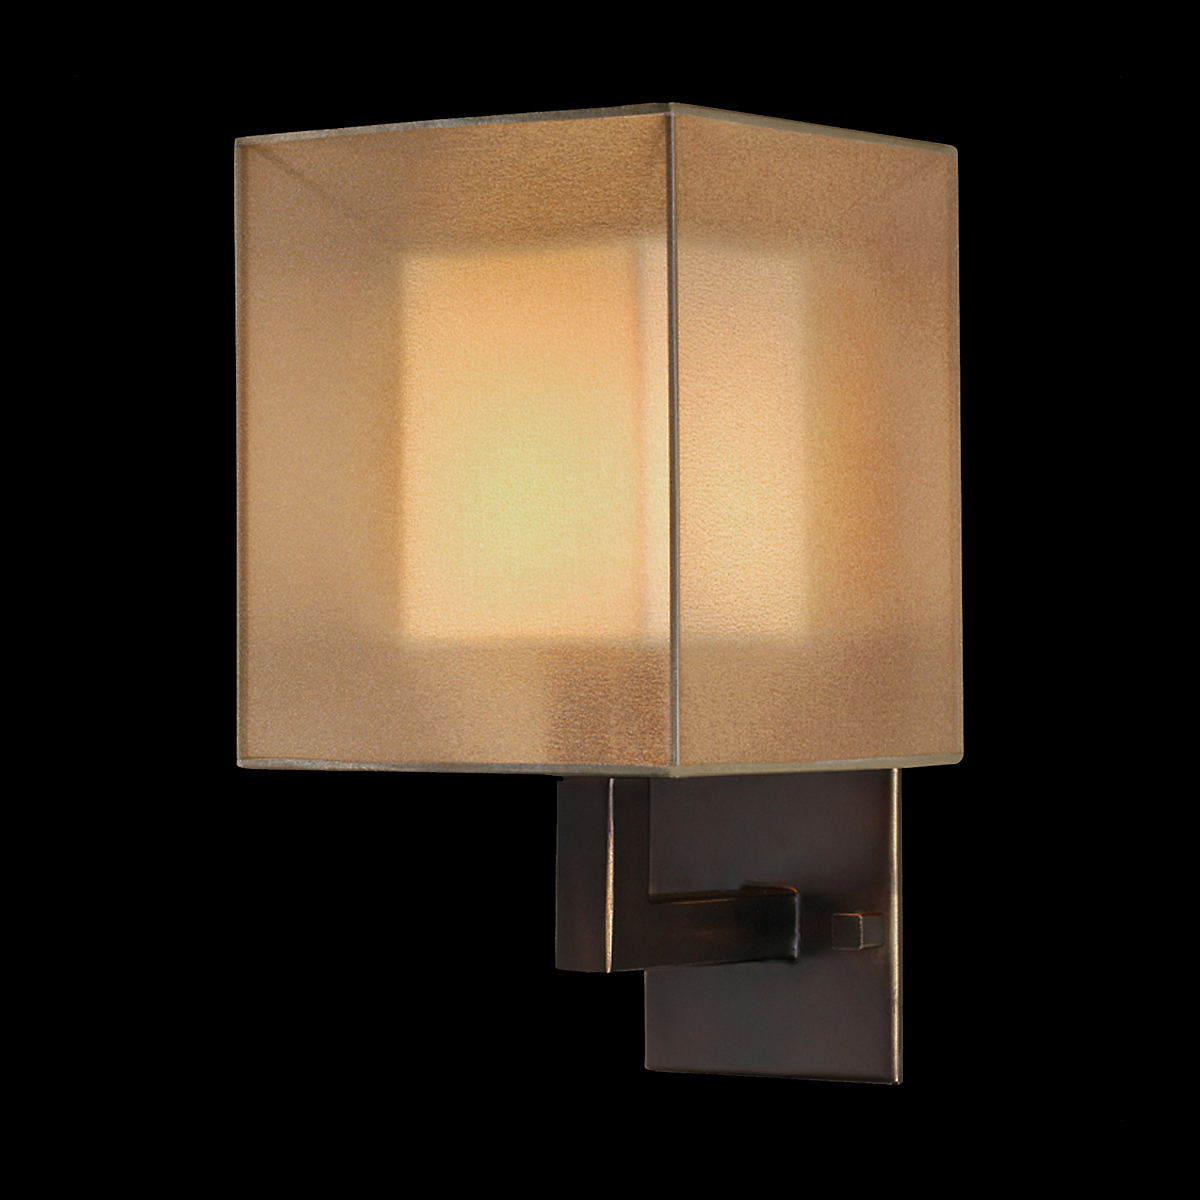 Floating Cube Wall Sconce